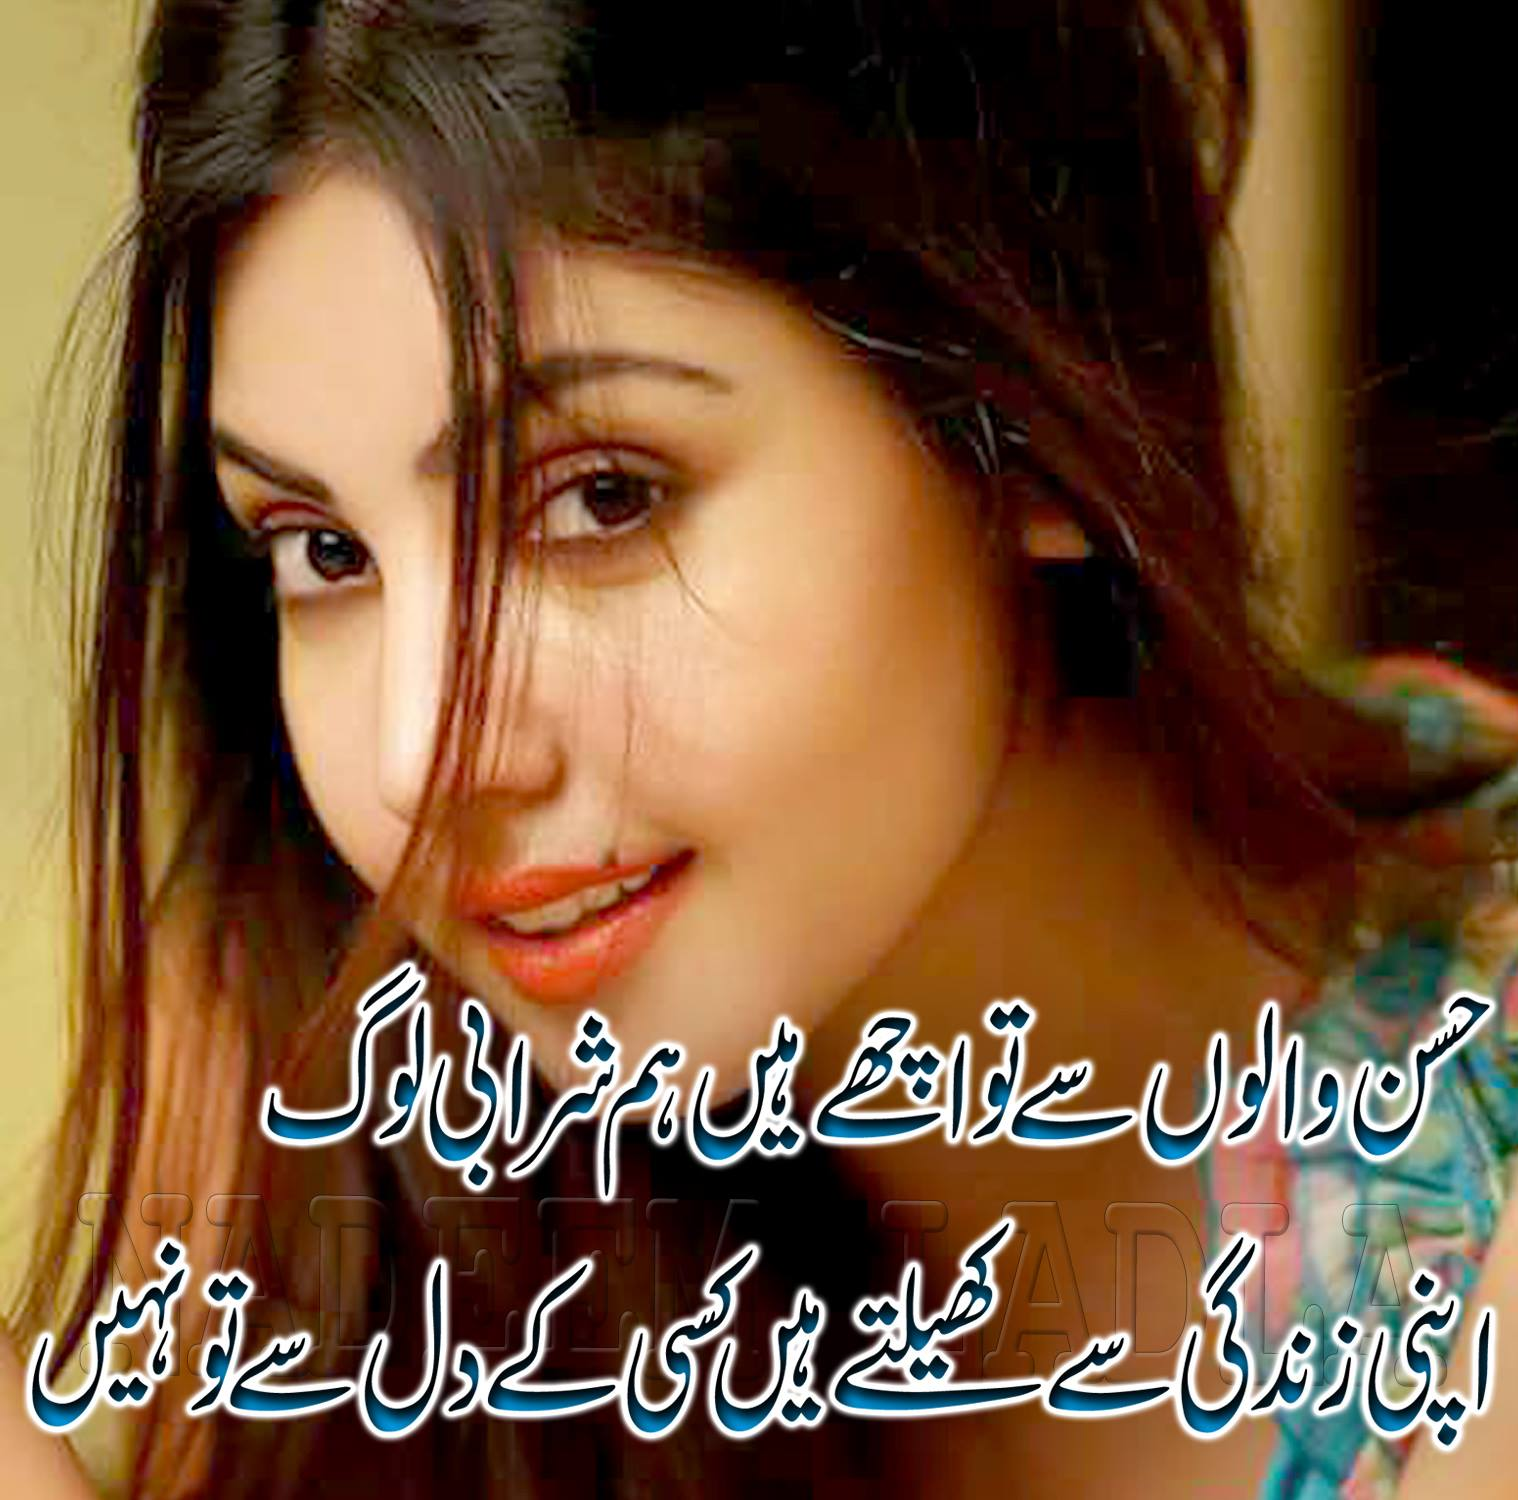 nadeem khan ladla poetry pics new nadeem khan ladla poetry in urdu latest nadeem